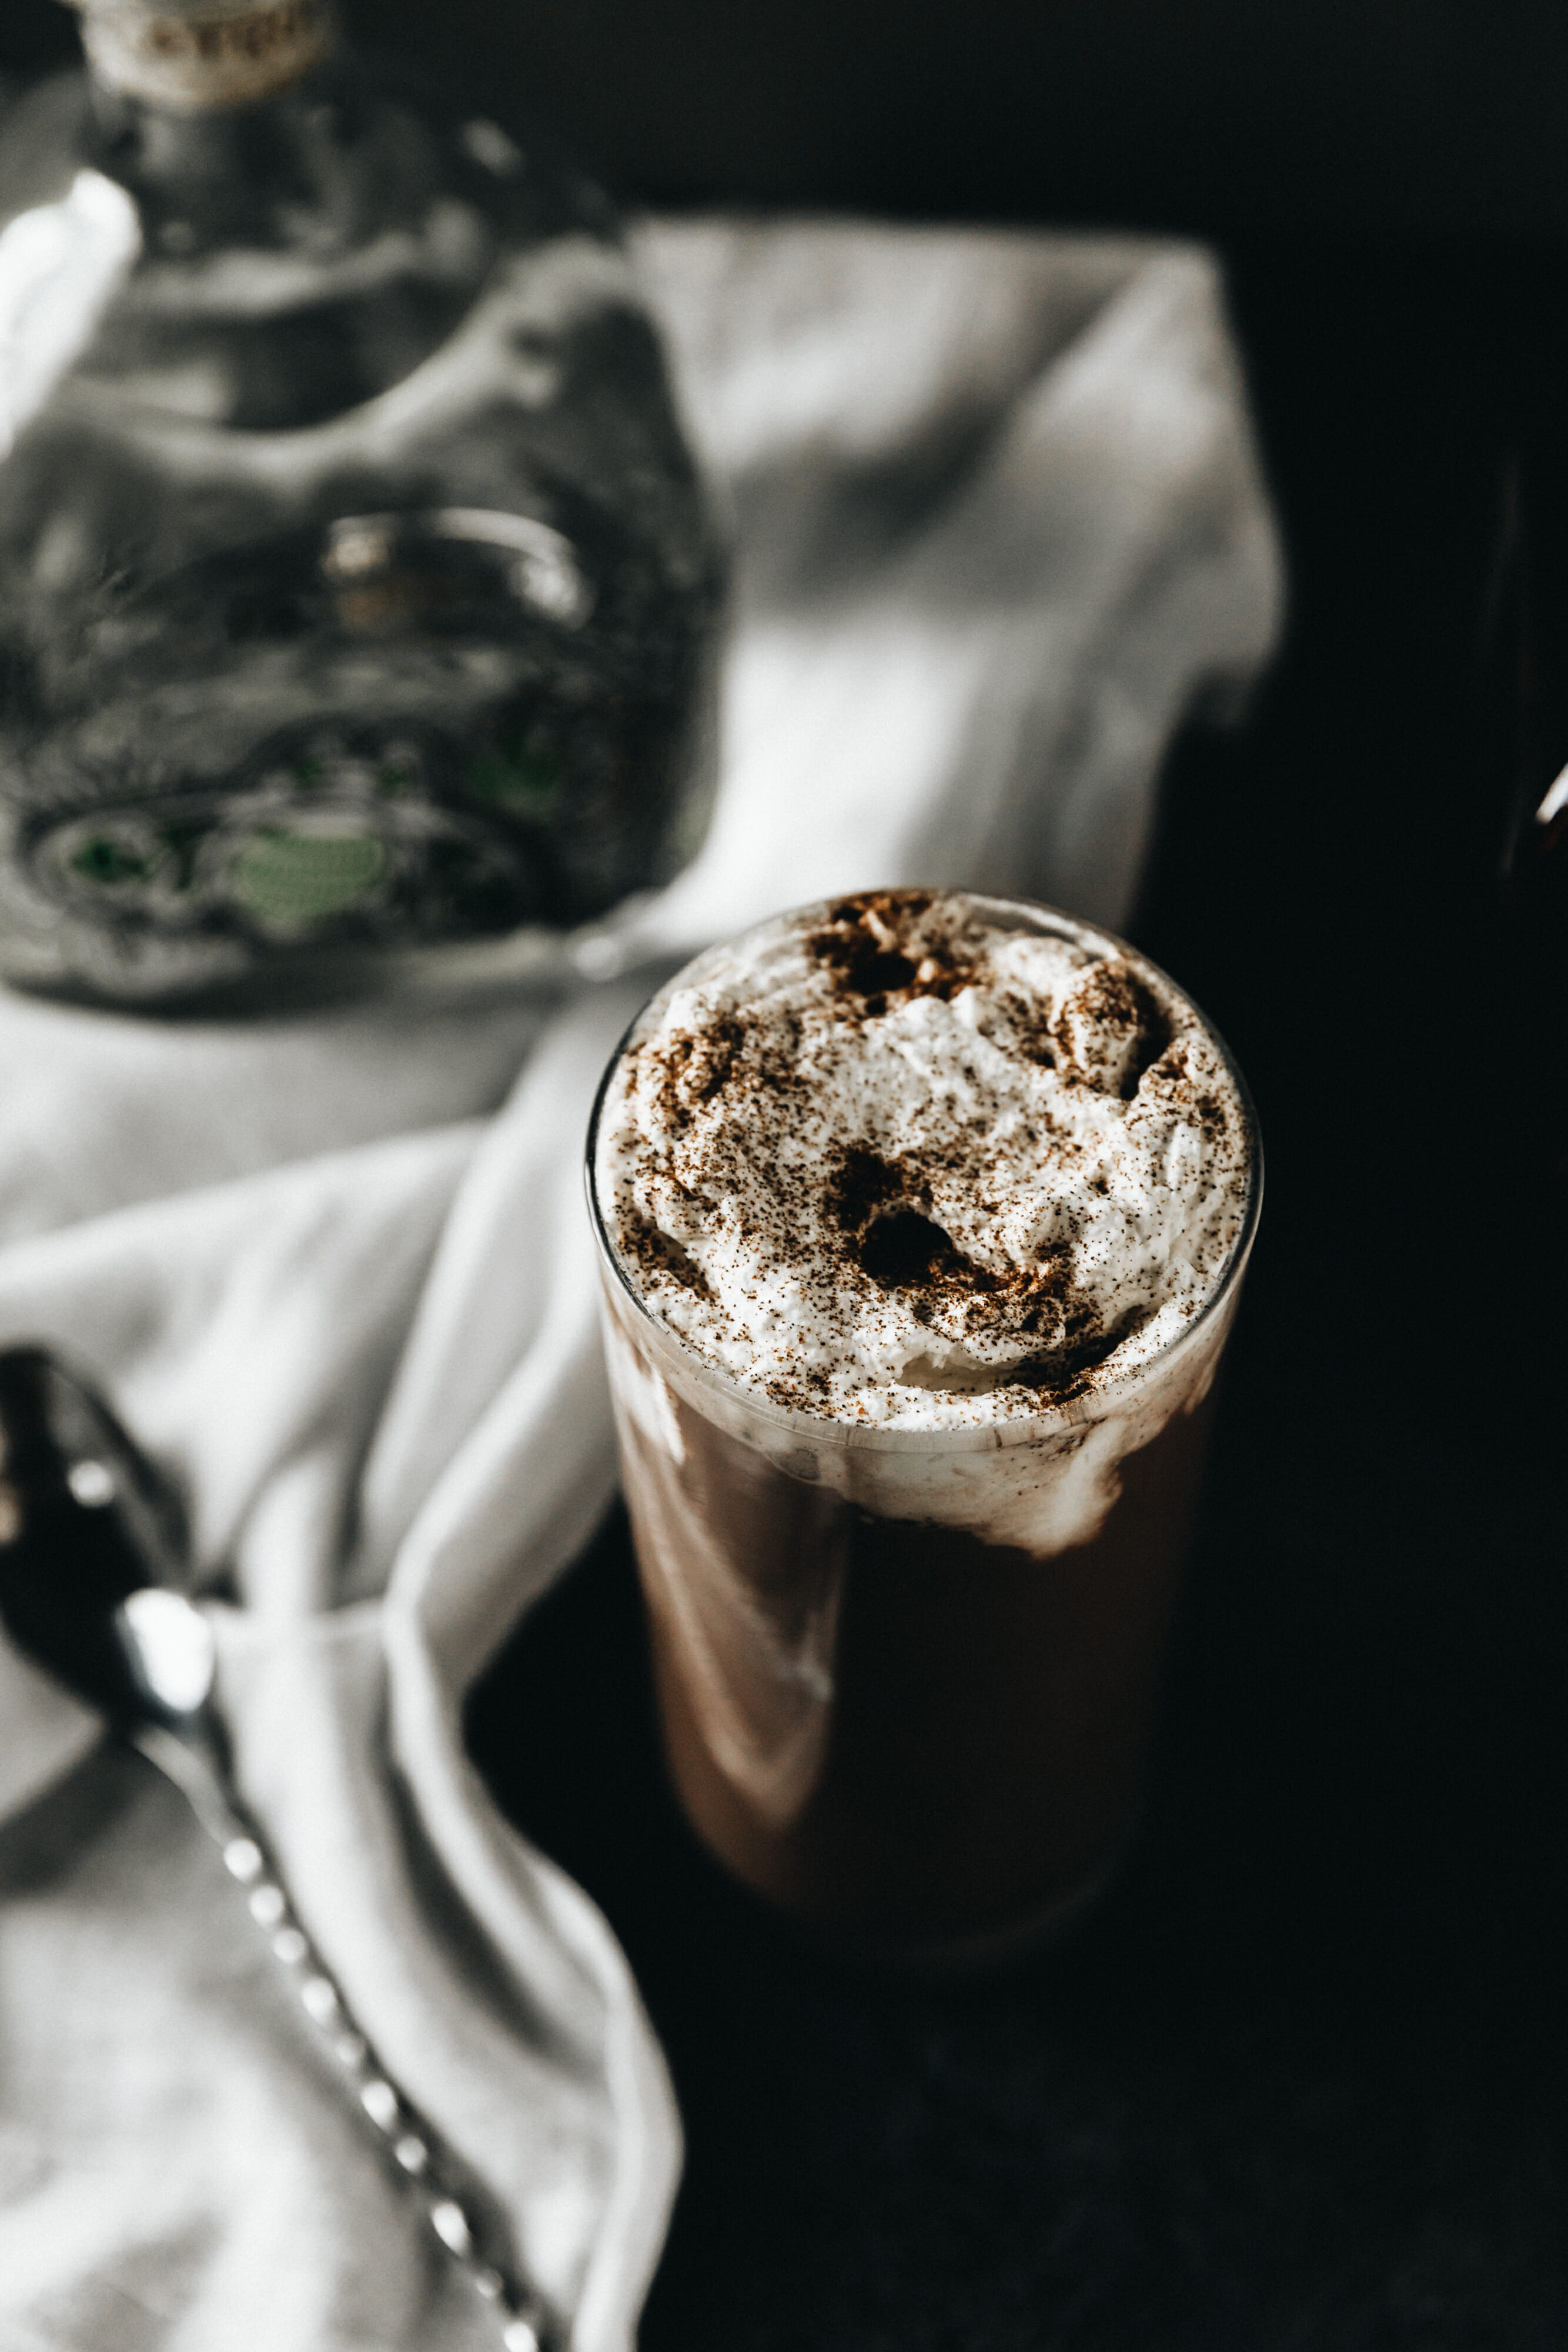 spiked chocolate milk with patron bottle